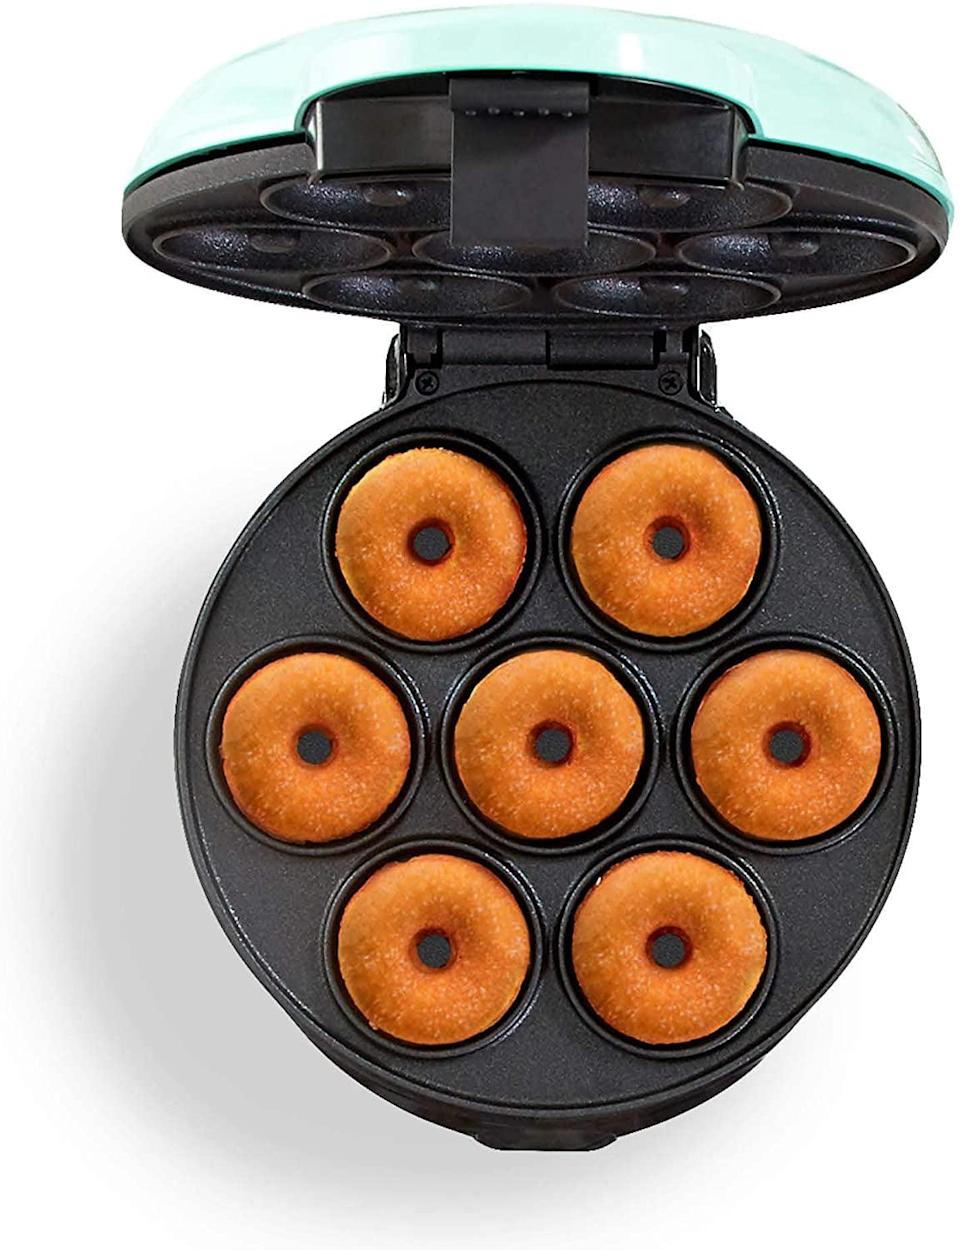 <p>Make the yummiest homemade donuts with the <span>Dash Mini Donut Maker Machine</span> ($20). It's got a non-stick surface and it's super easy to use. You can make up to seven donuts at once!</p>